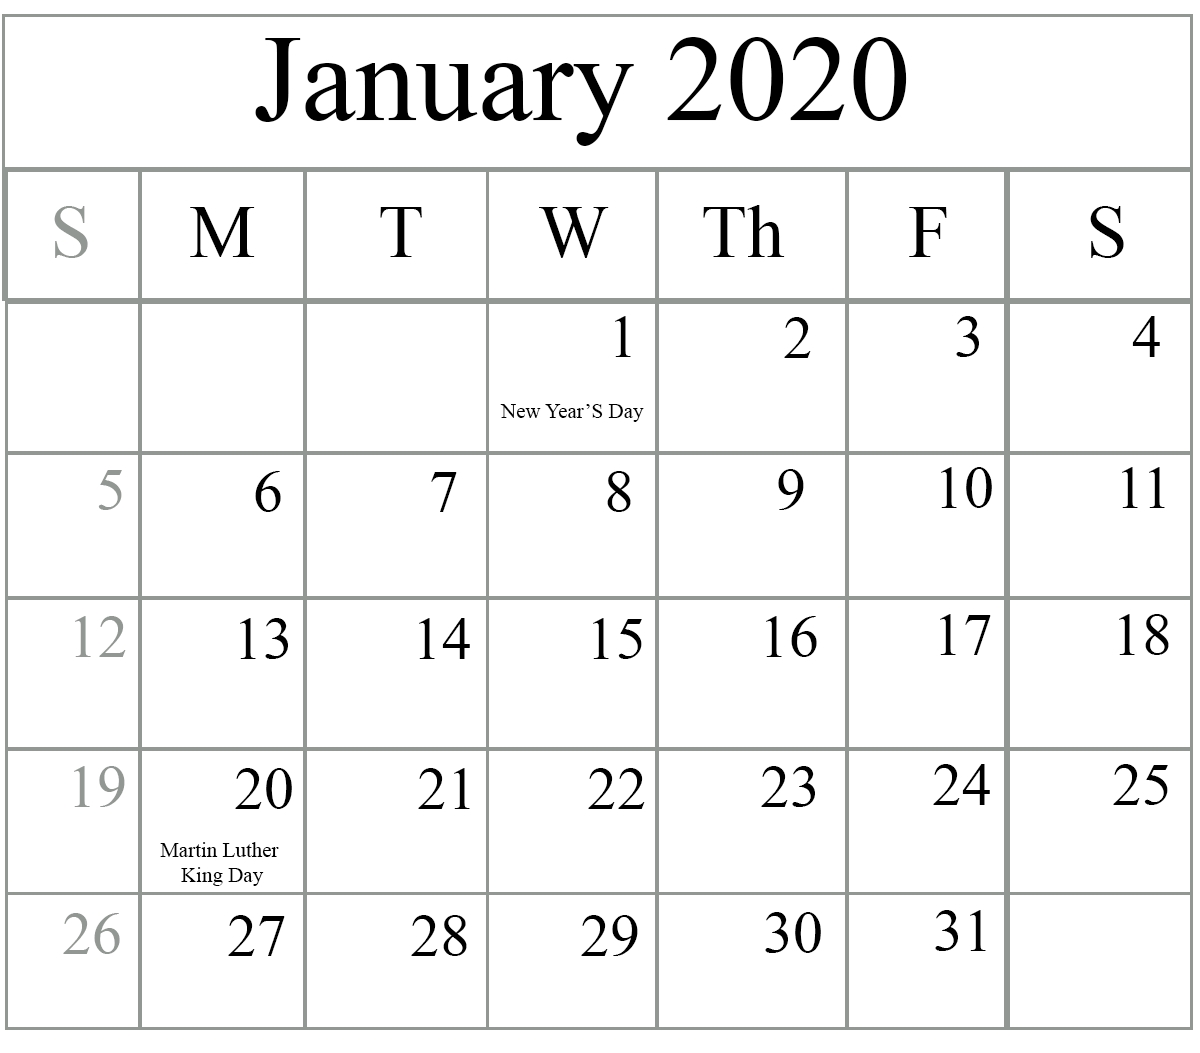 Free Blank January 2020 Calendar Printable In Pdf, Word, Excel in Free 2020 Calendar Maker